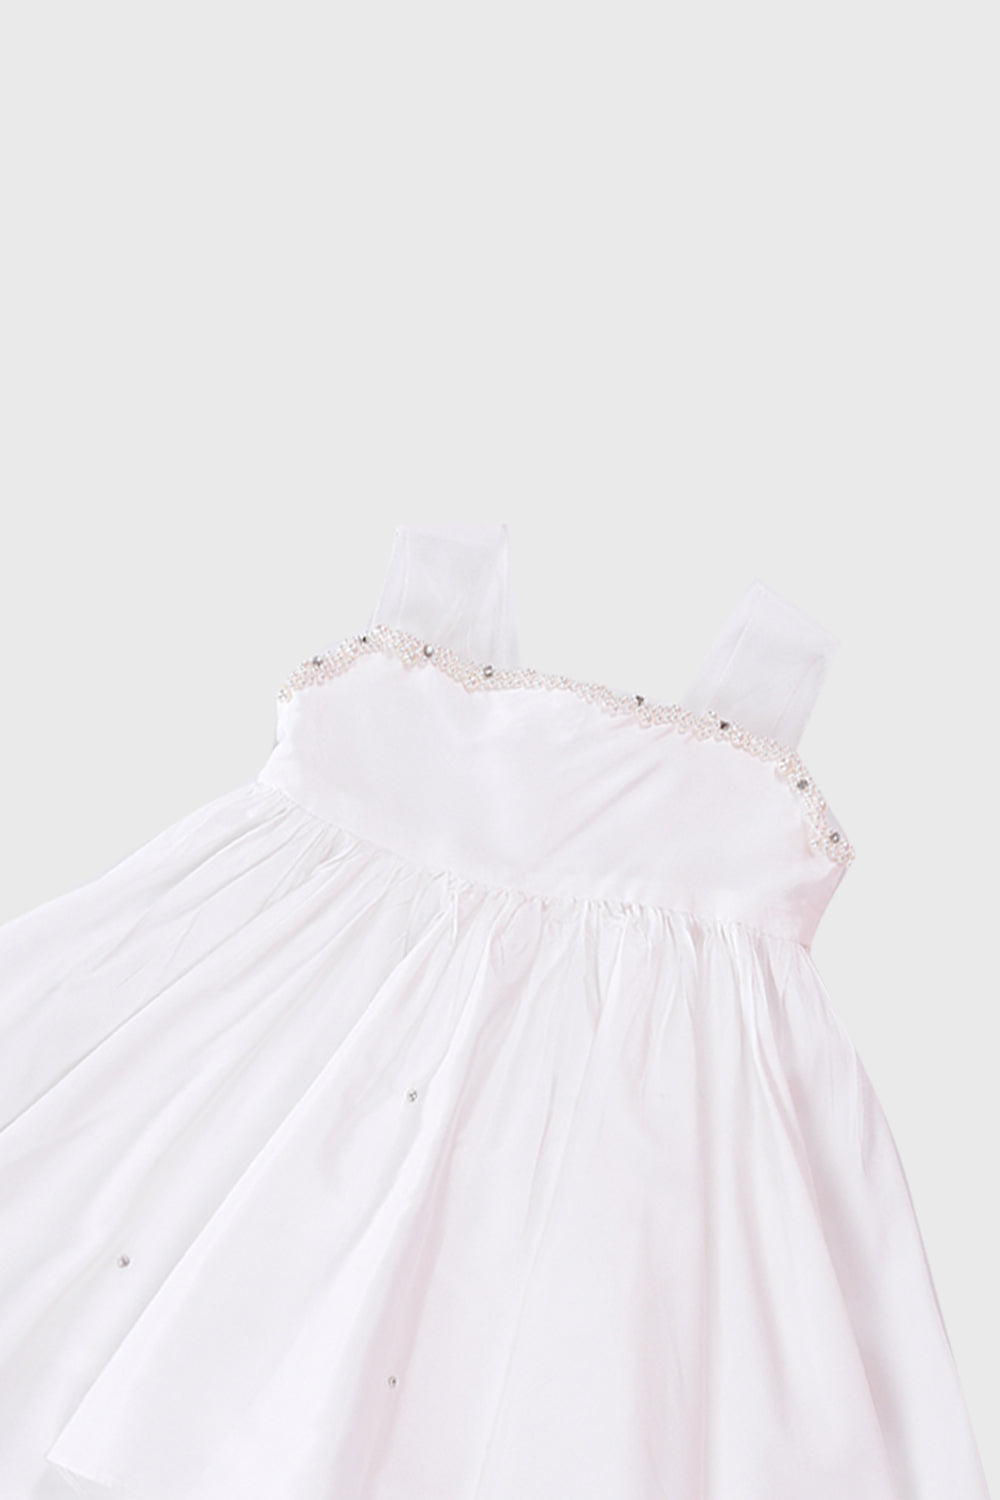 The Kaia Co Alice Dress in White